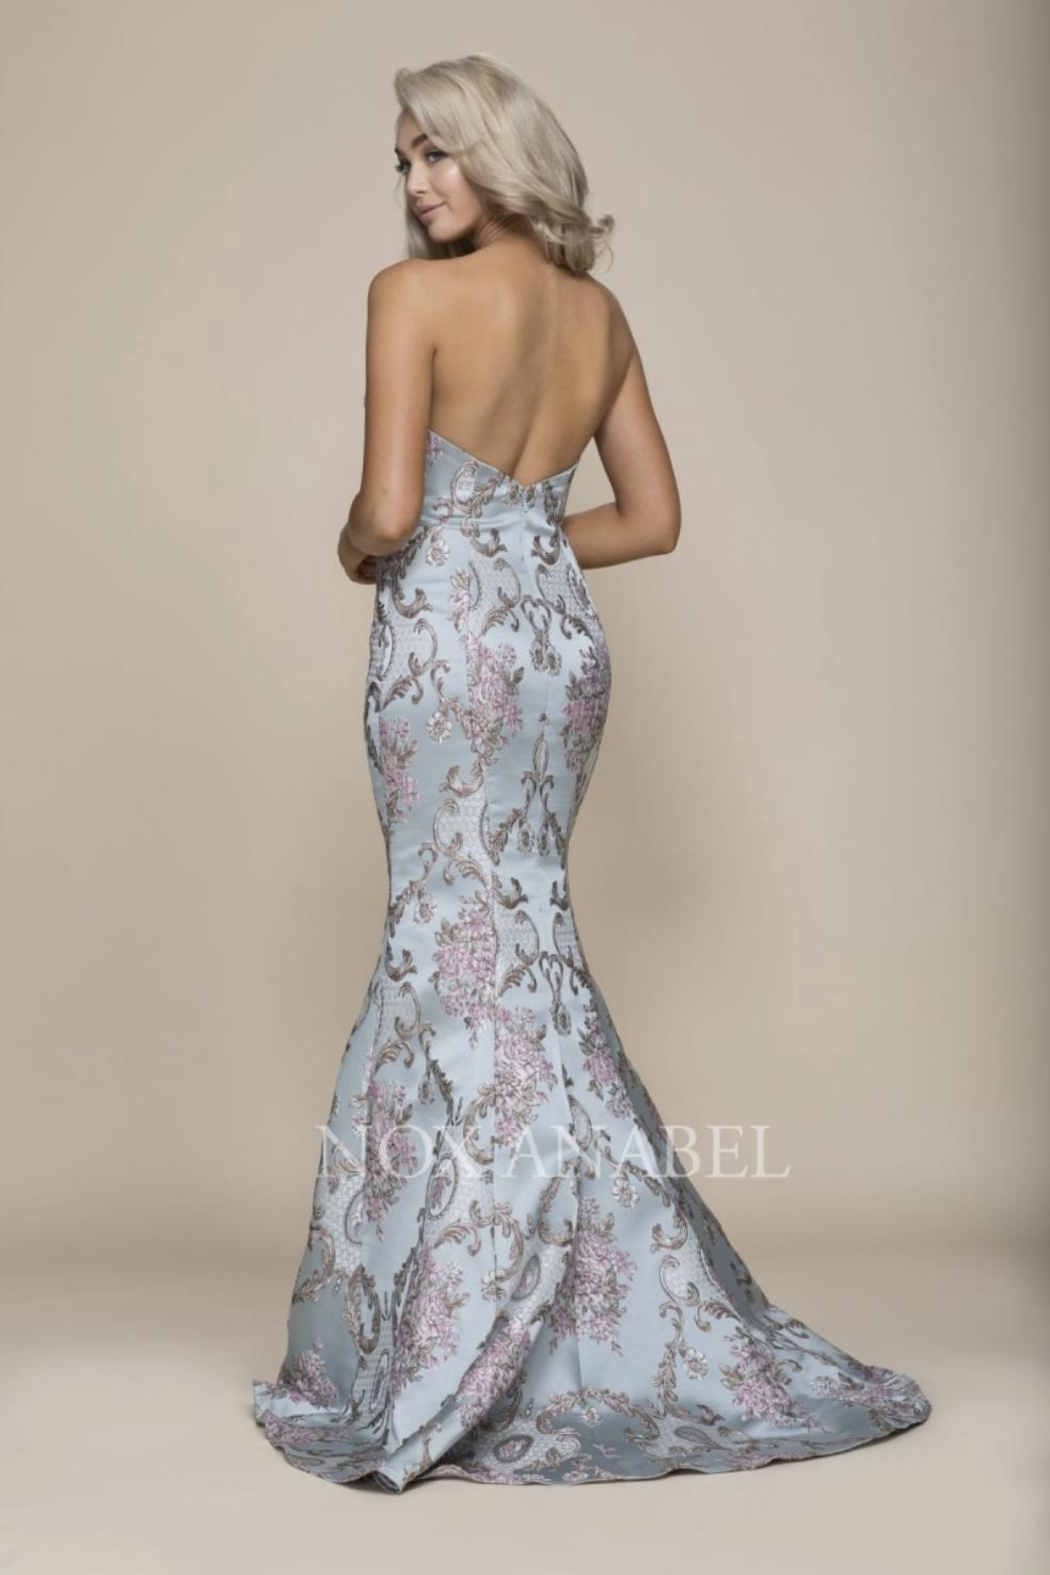 NOX A N A B E L Paisley Strapless Formal-Stress - Side Cropped Image